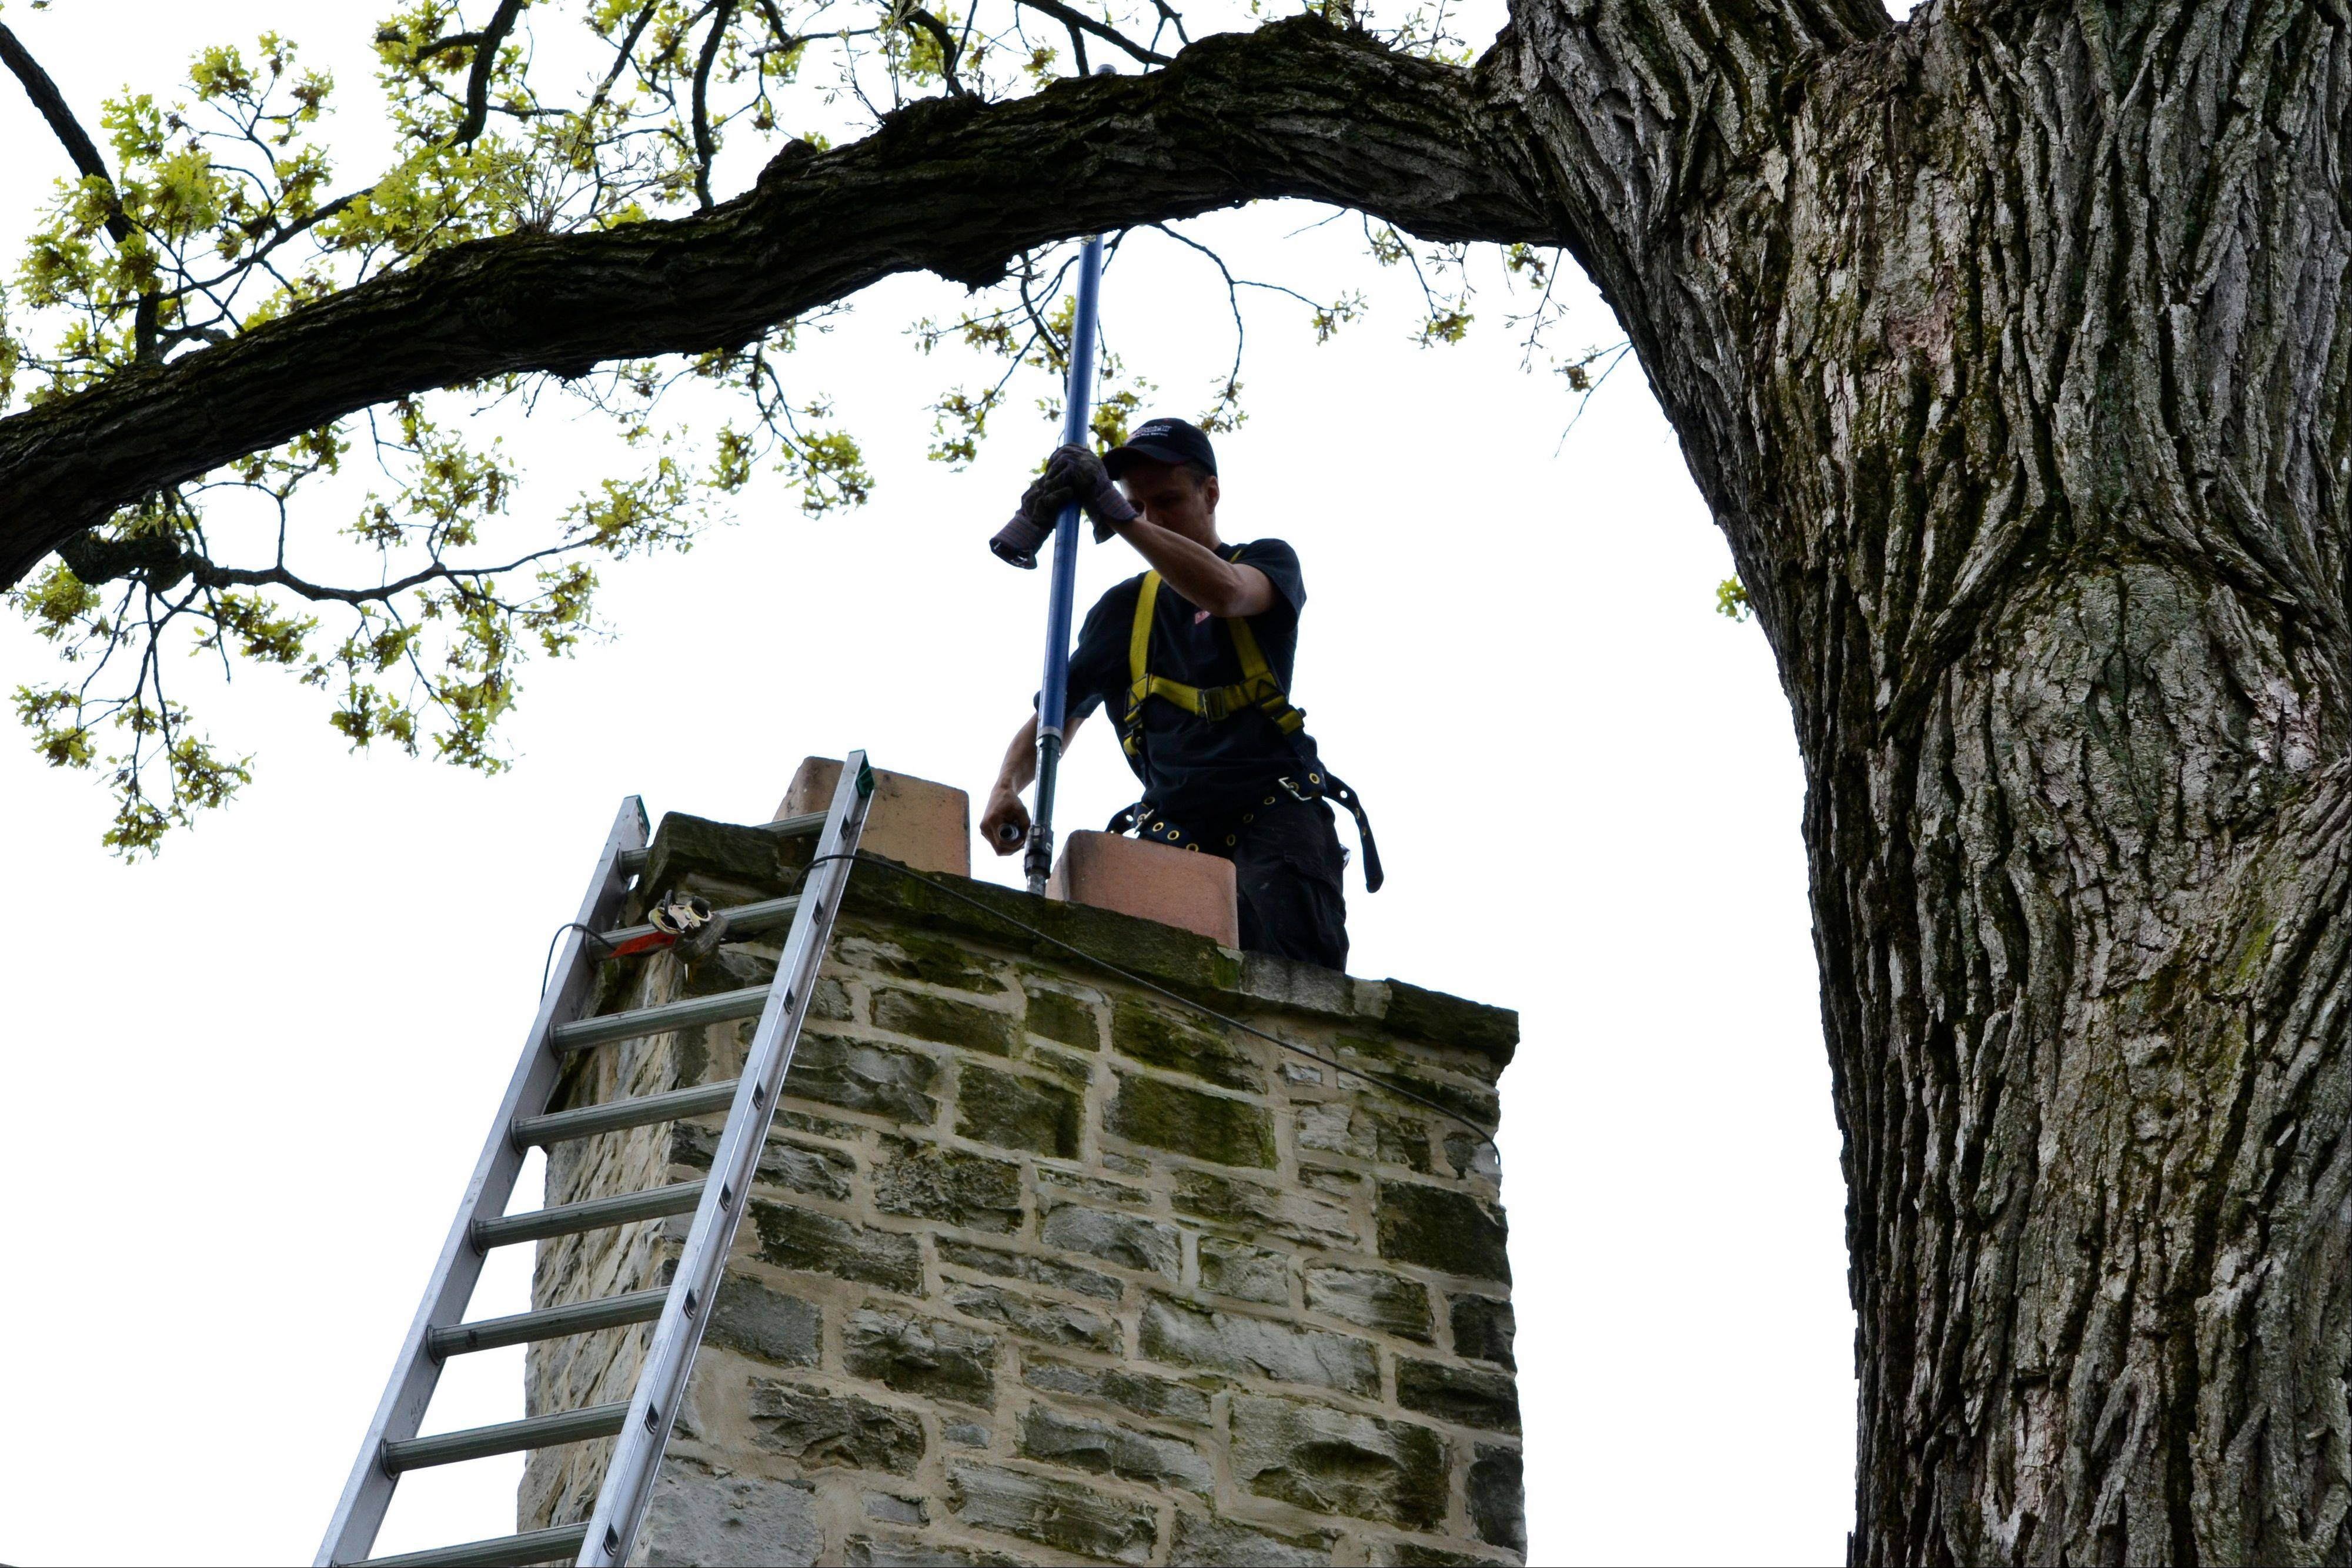 Jacques Leccia of Lindemann Chimney in Lake Bluff cleans the chimney of suburban home this past spring. Leccia is a Chimney Safety Institute of America certified chimney sweep.